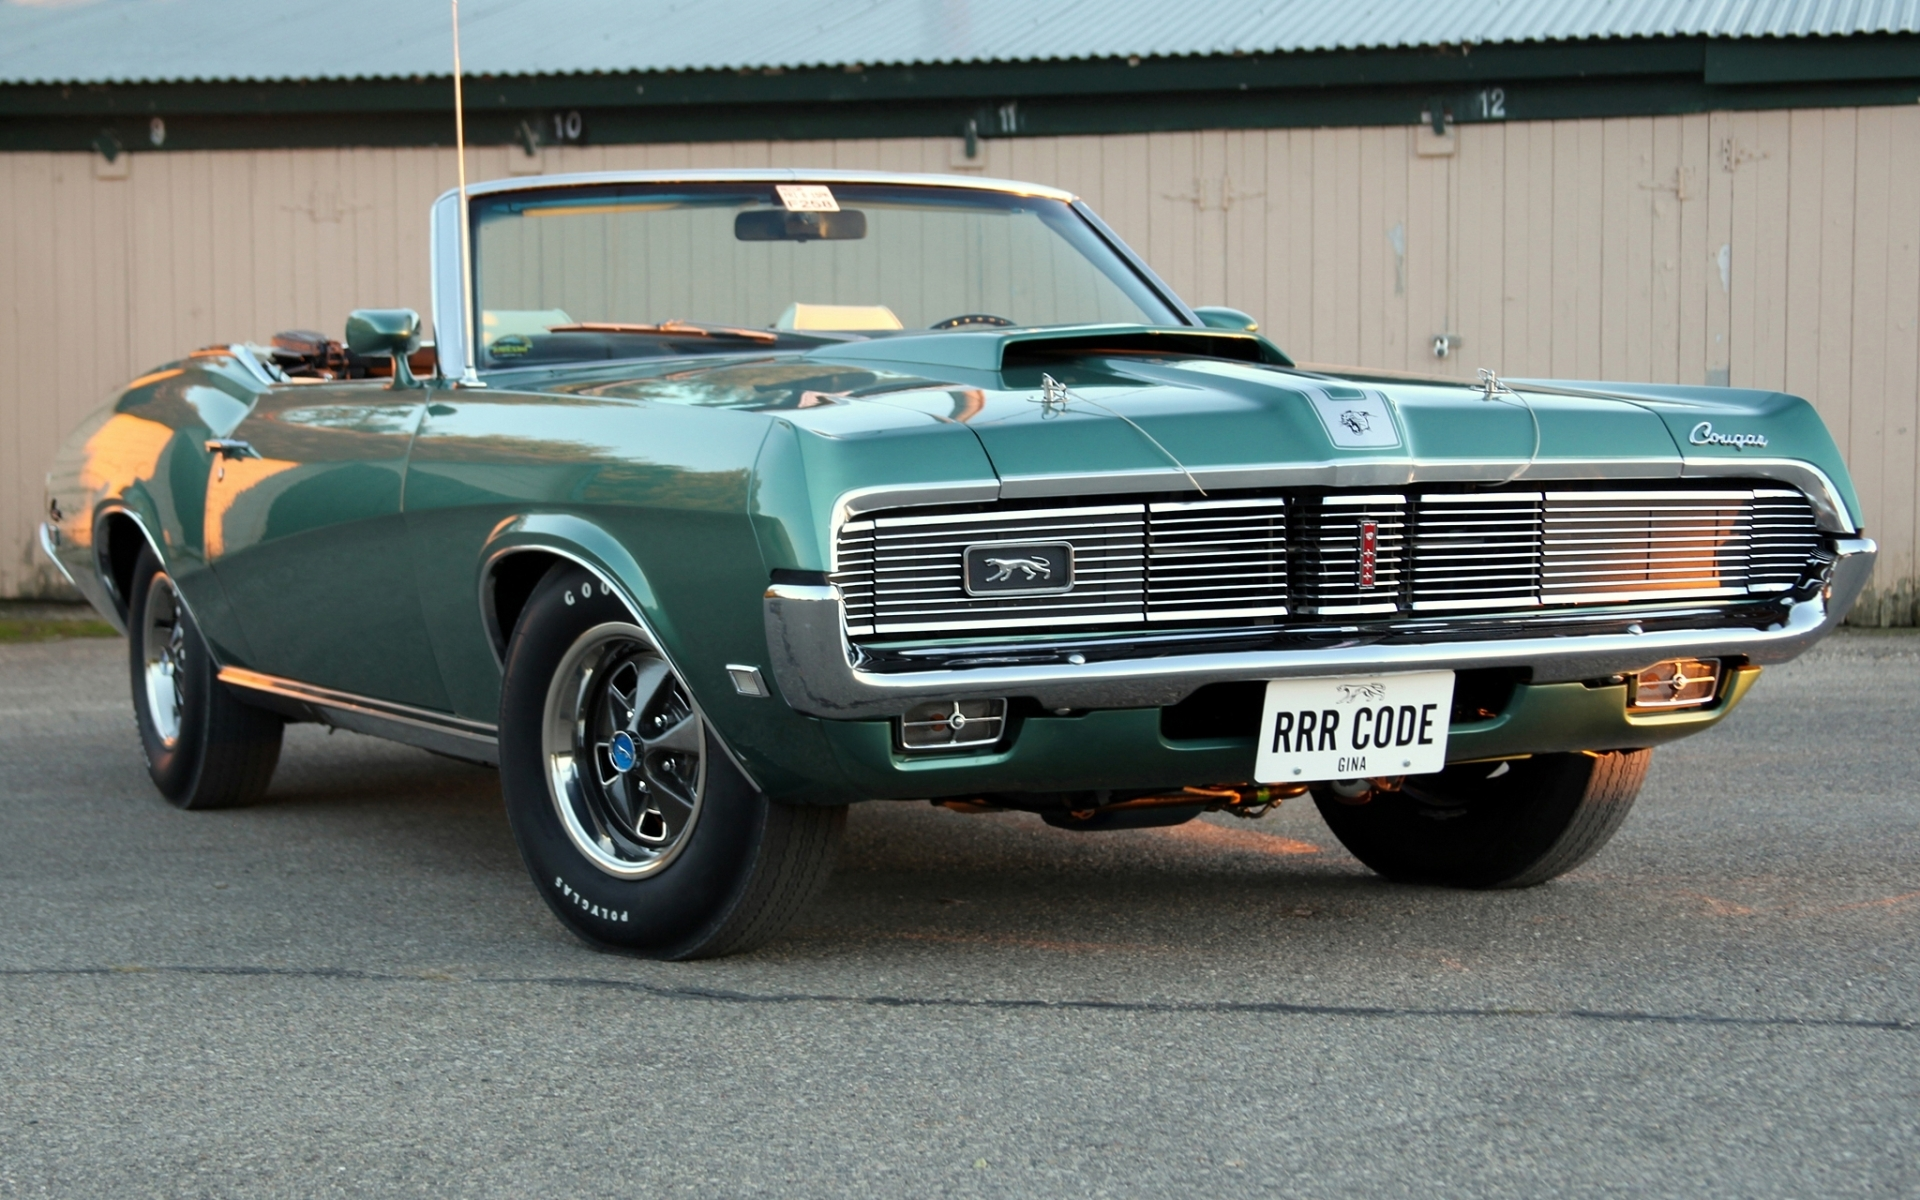 Cool Muscle Car Wallpapers Green 1 1969 Mercury Cougar Hd Wallpapers Background Images